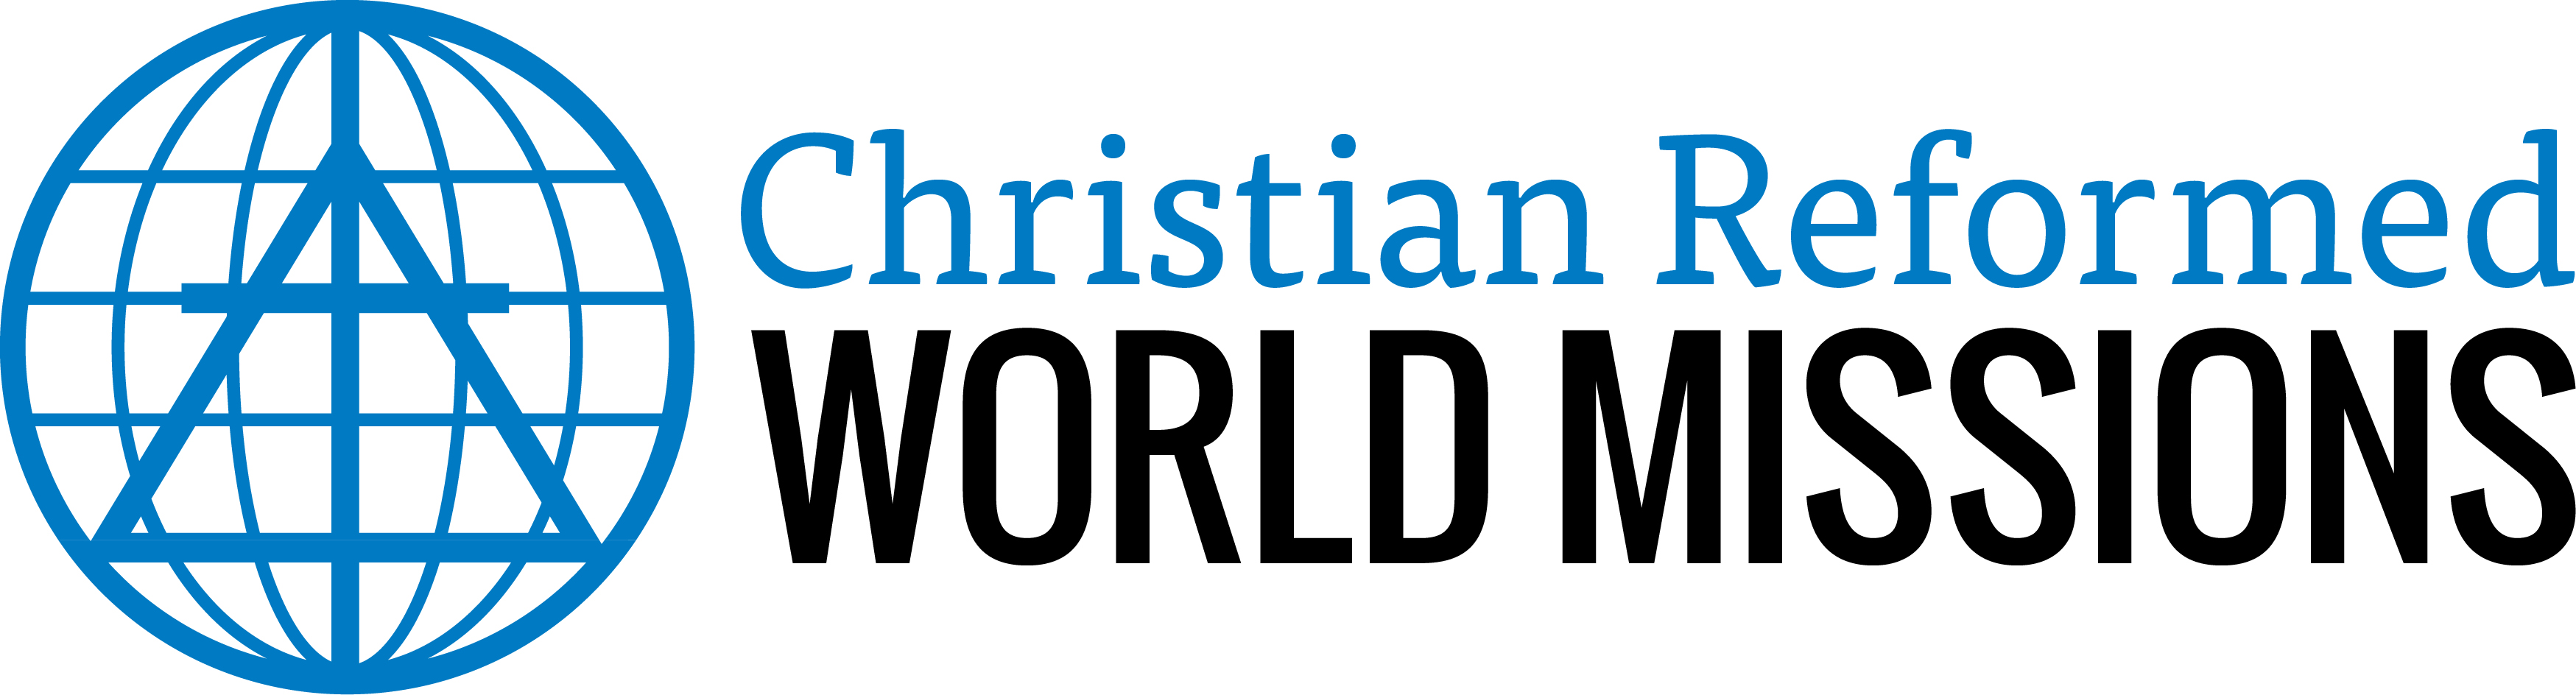 Christian Reformed World Missions